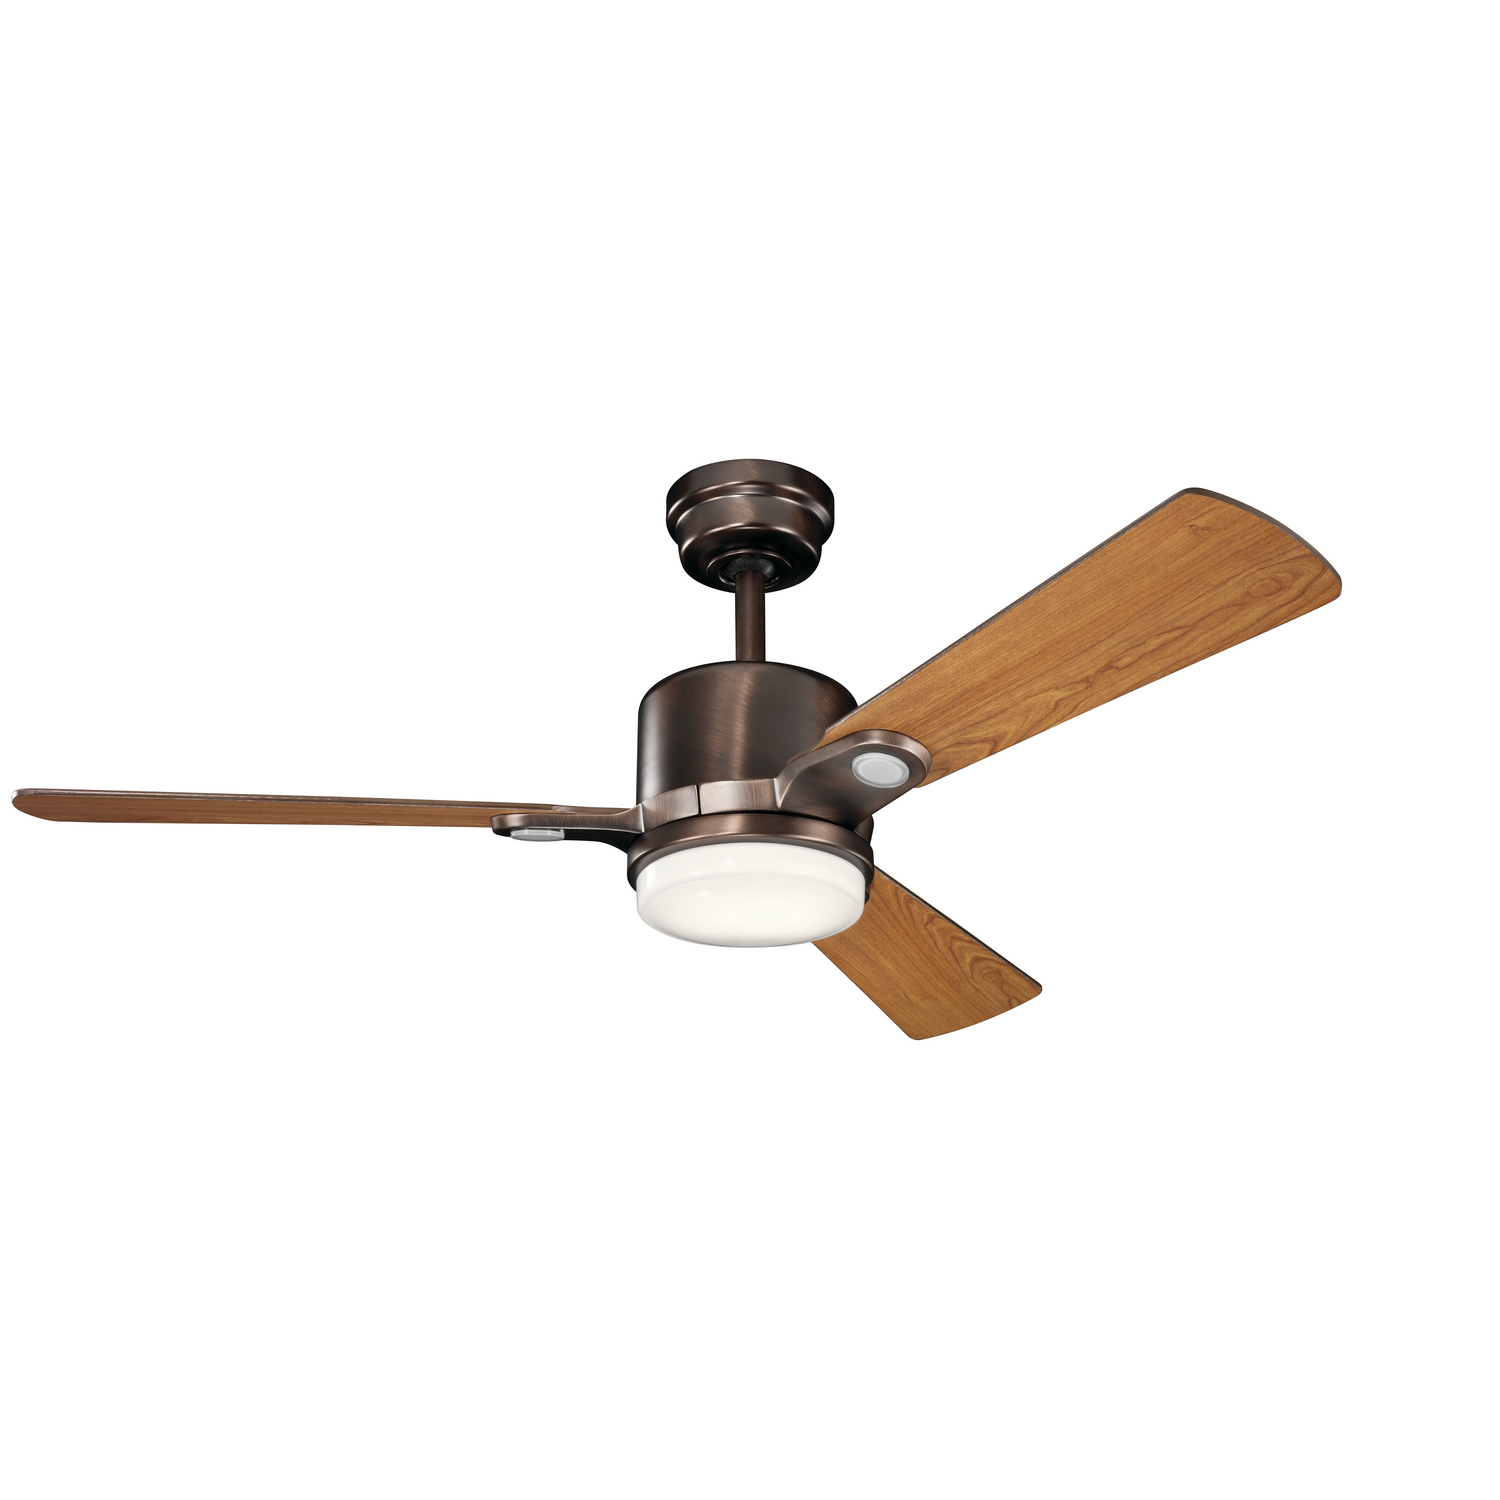 48 inchCeiling Fan from the Celino collection by Kichler 300304OBB